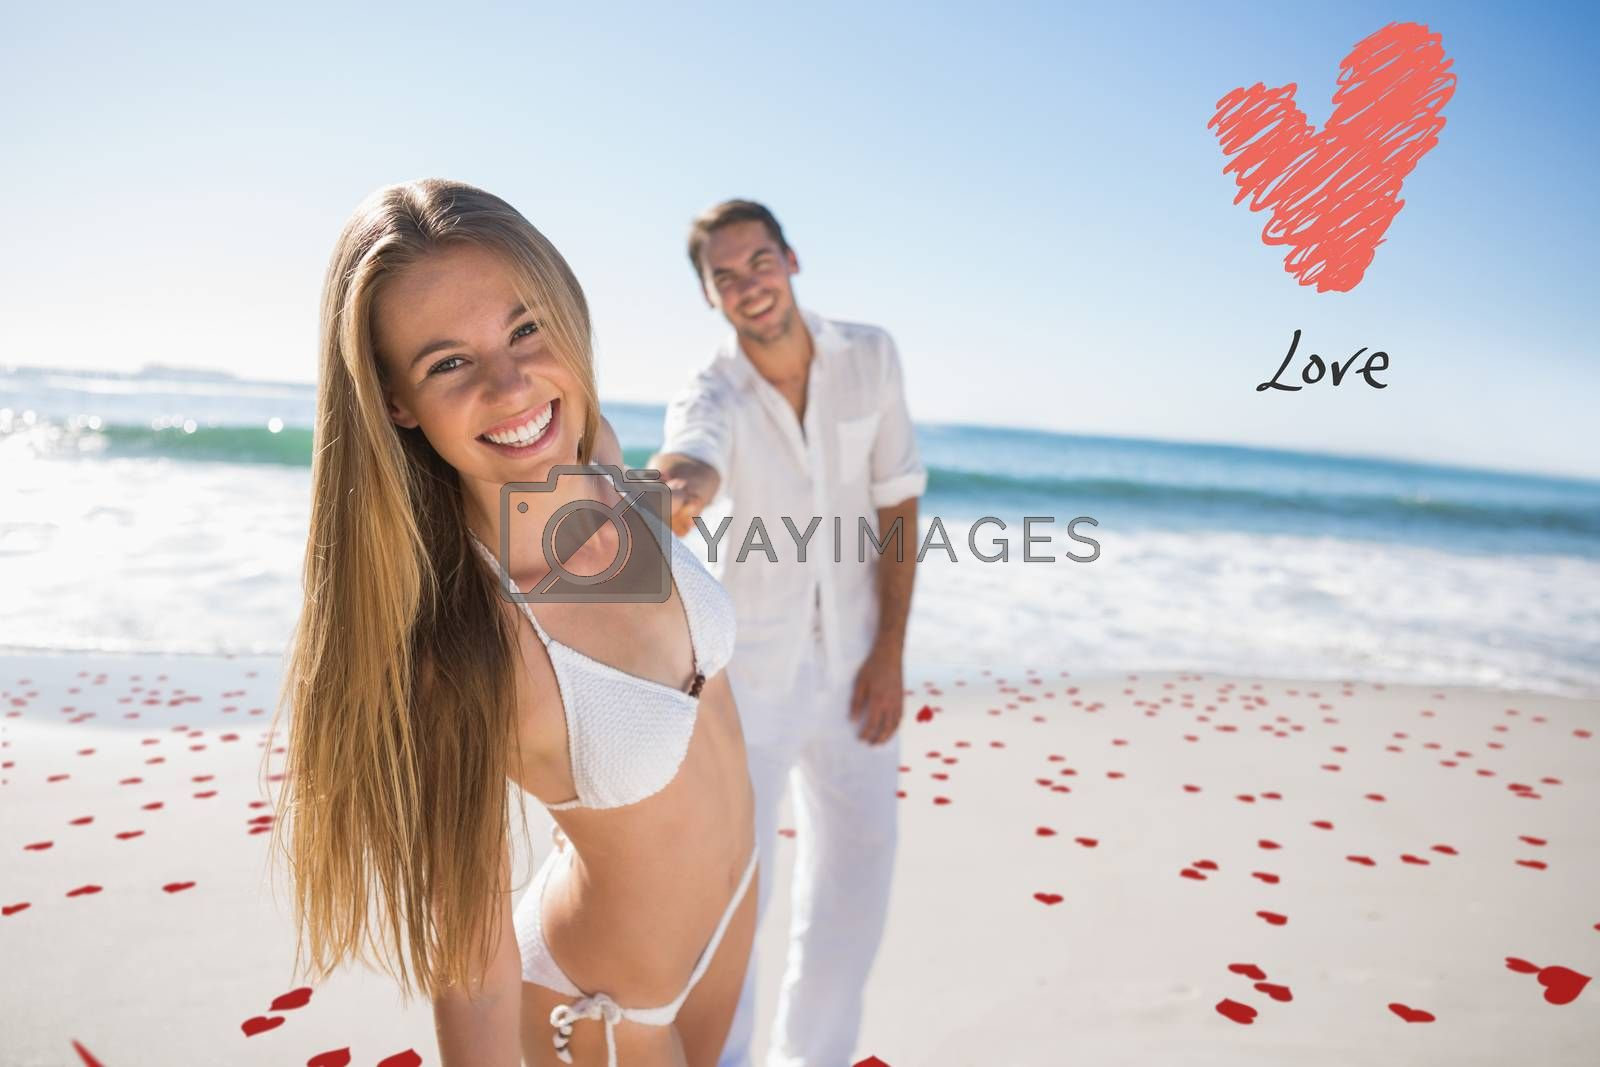 Woman smiling at camera with boyfriend holding her hand against love heart